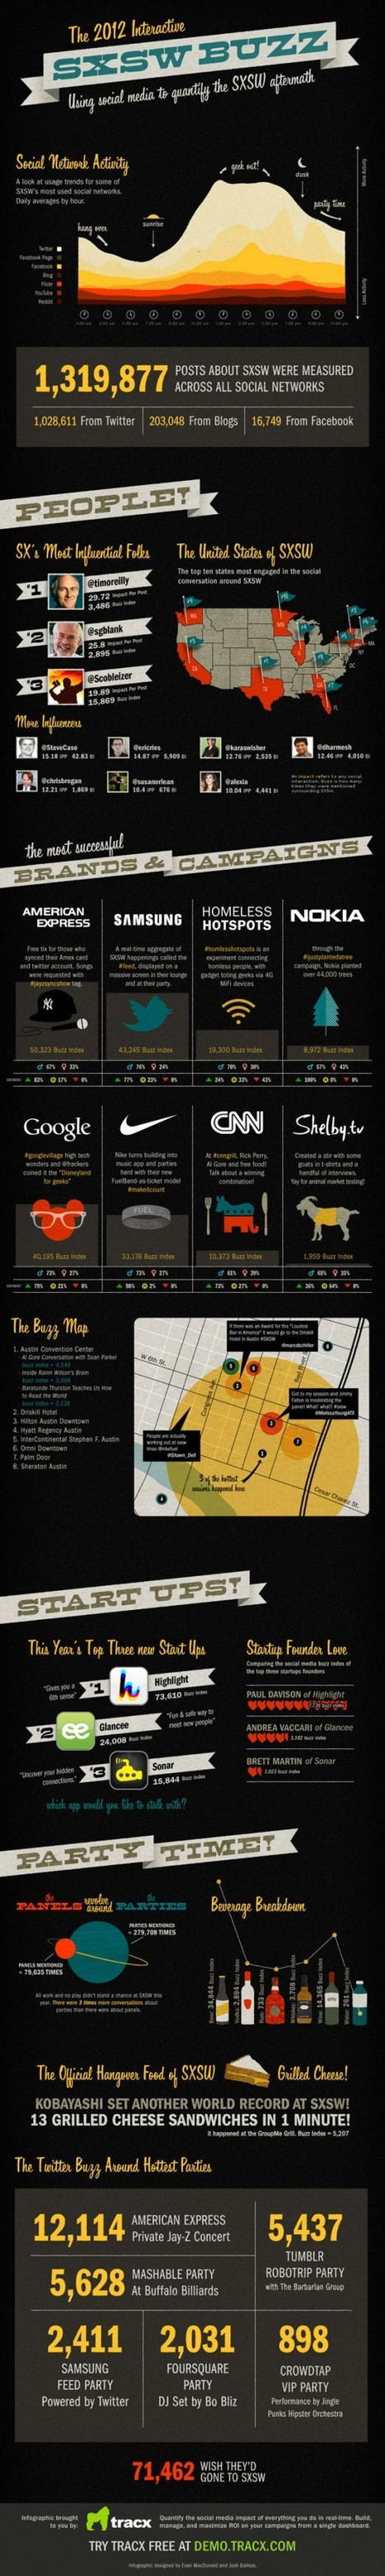 The Ultimate SXSW infographic: The most popular influencers, parties, brand campaigns and more | Ideas That Matter From SXSW '13 | Scoop.it